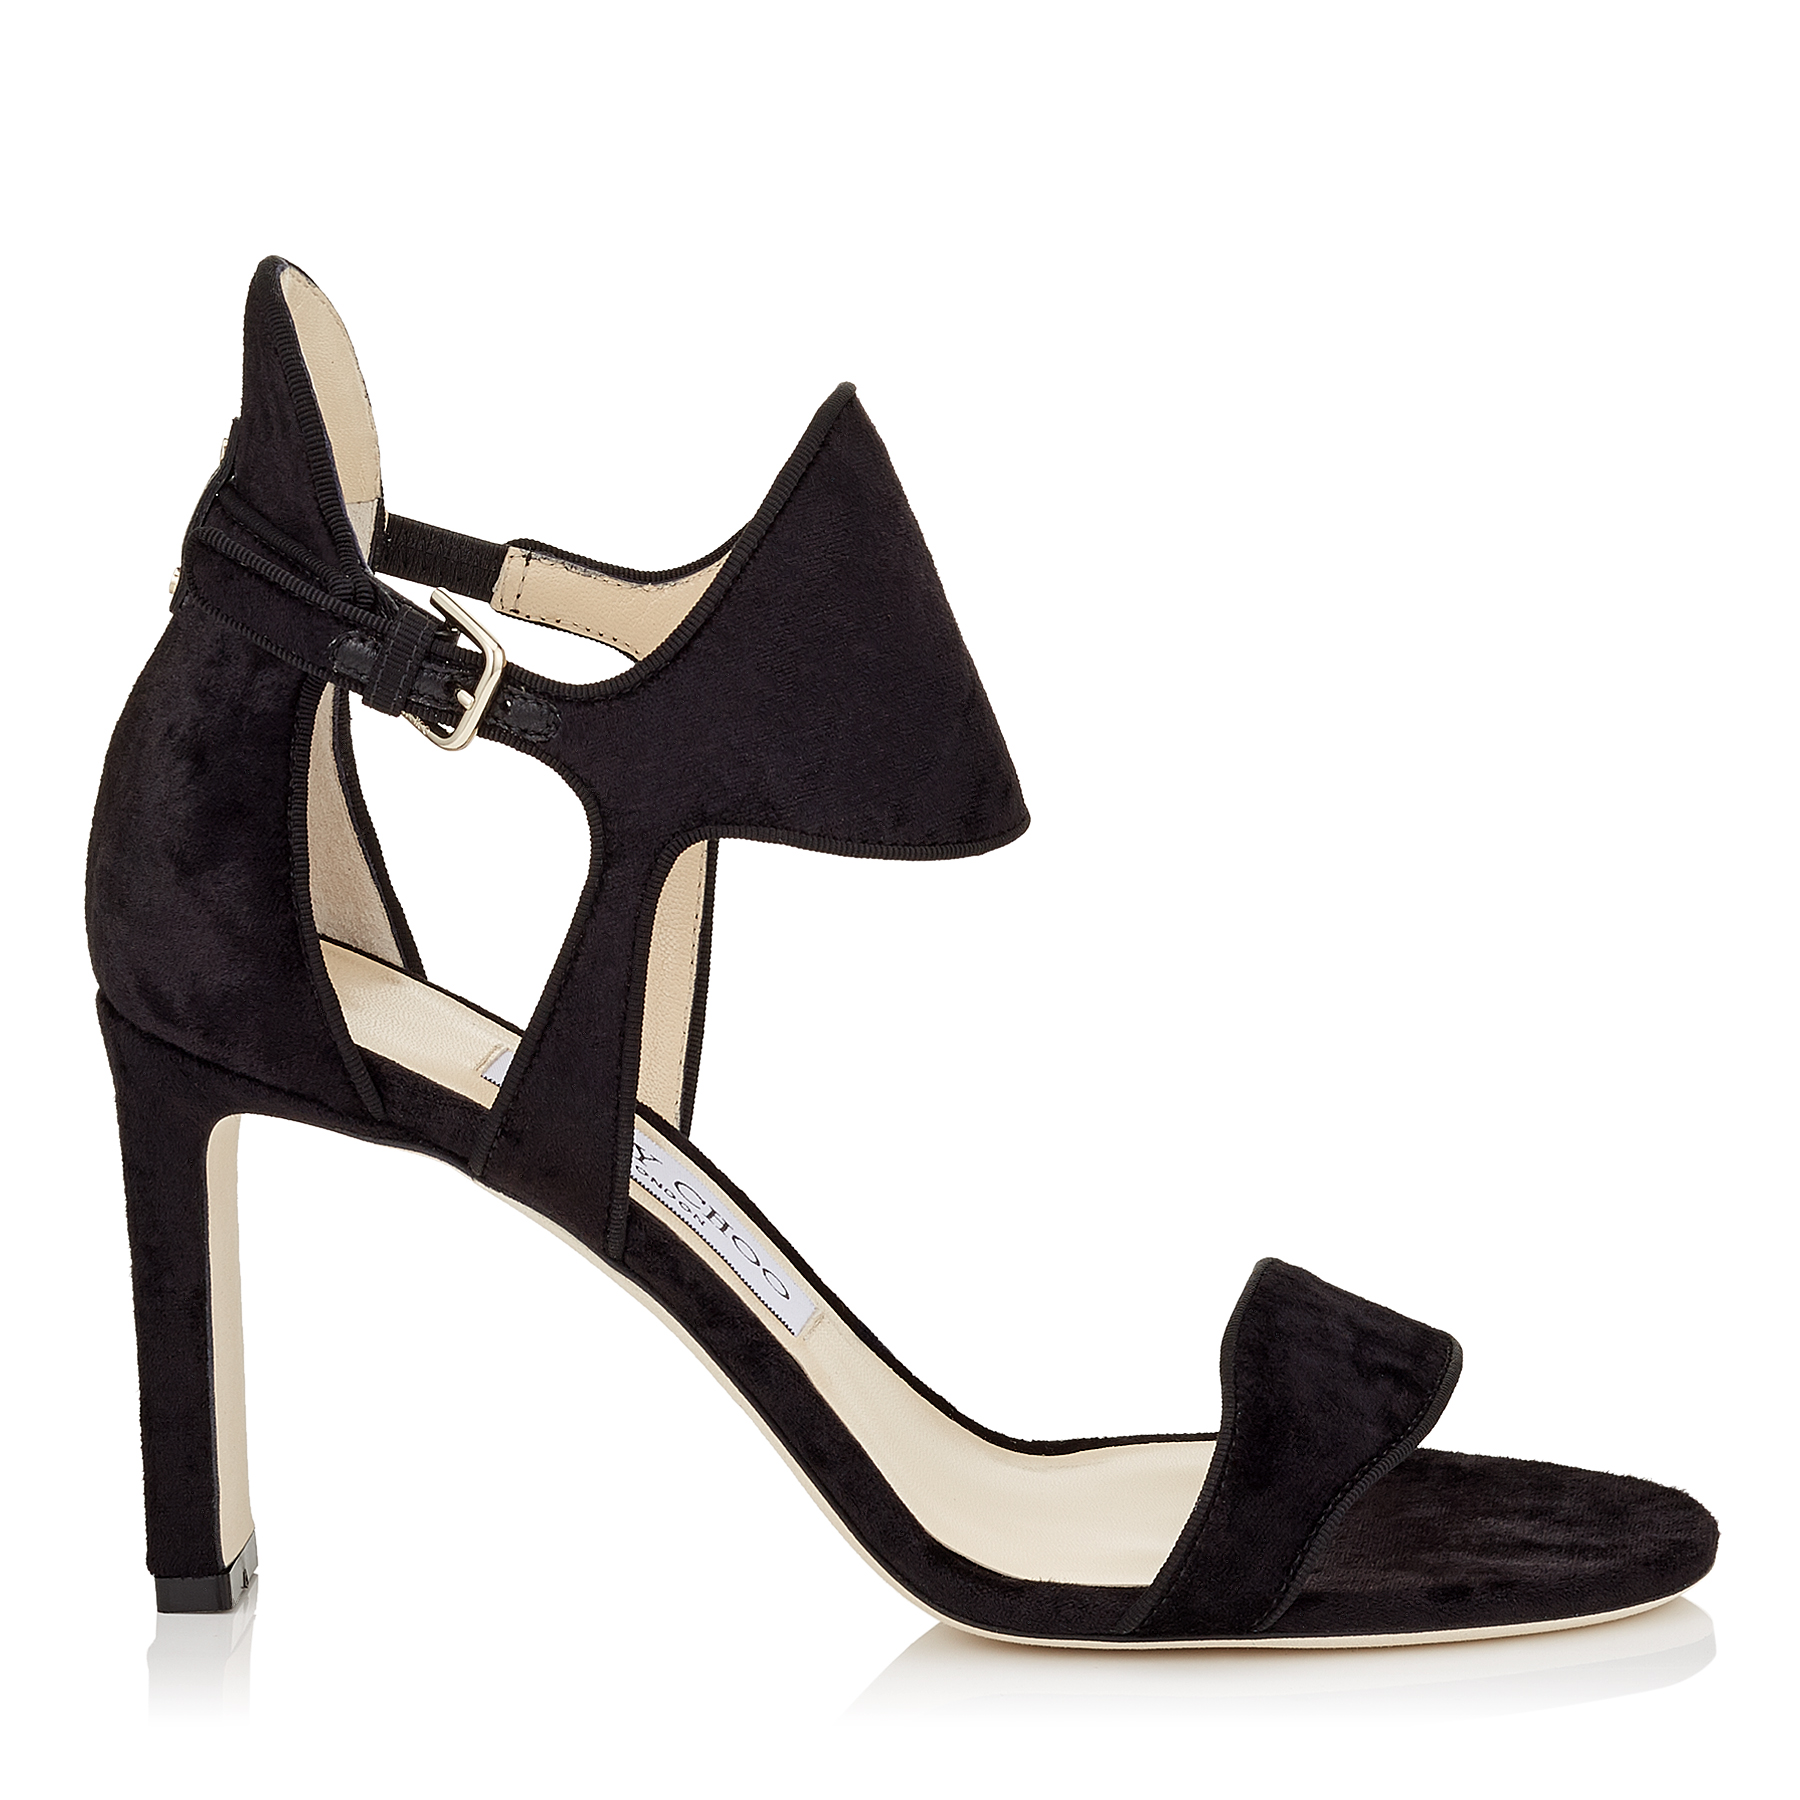 Photo of MOLLY 85 Black Crushed Velvet Sandals by Jimmy Choo womens shoes - buy Jimmy Choo footwear online